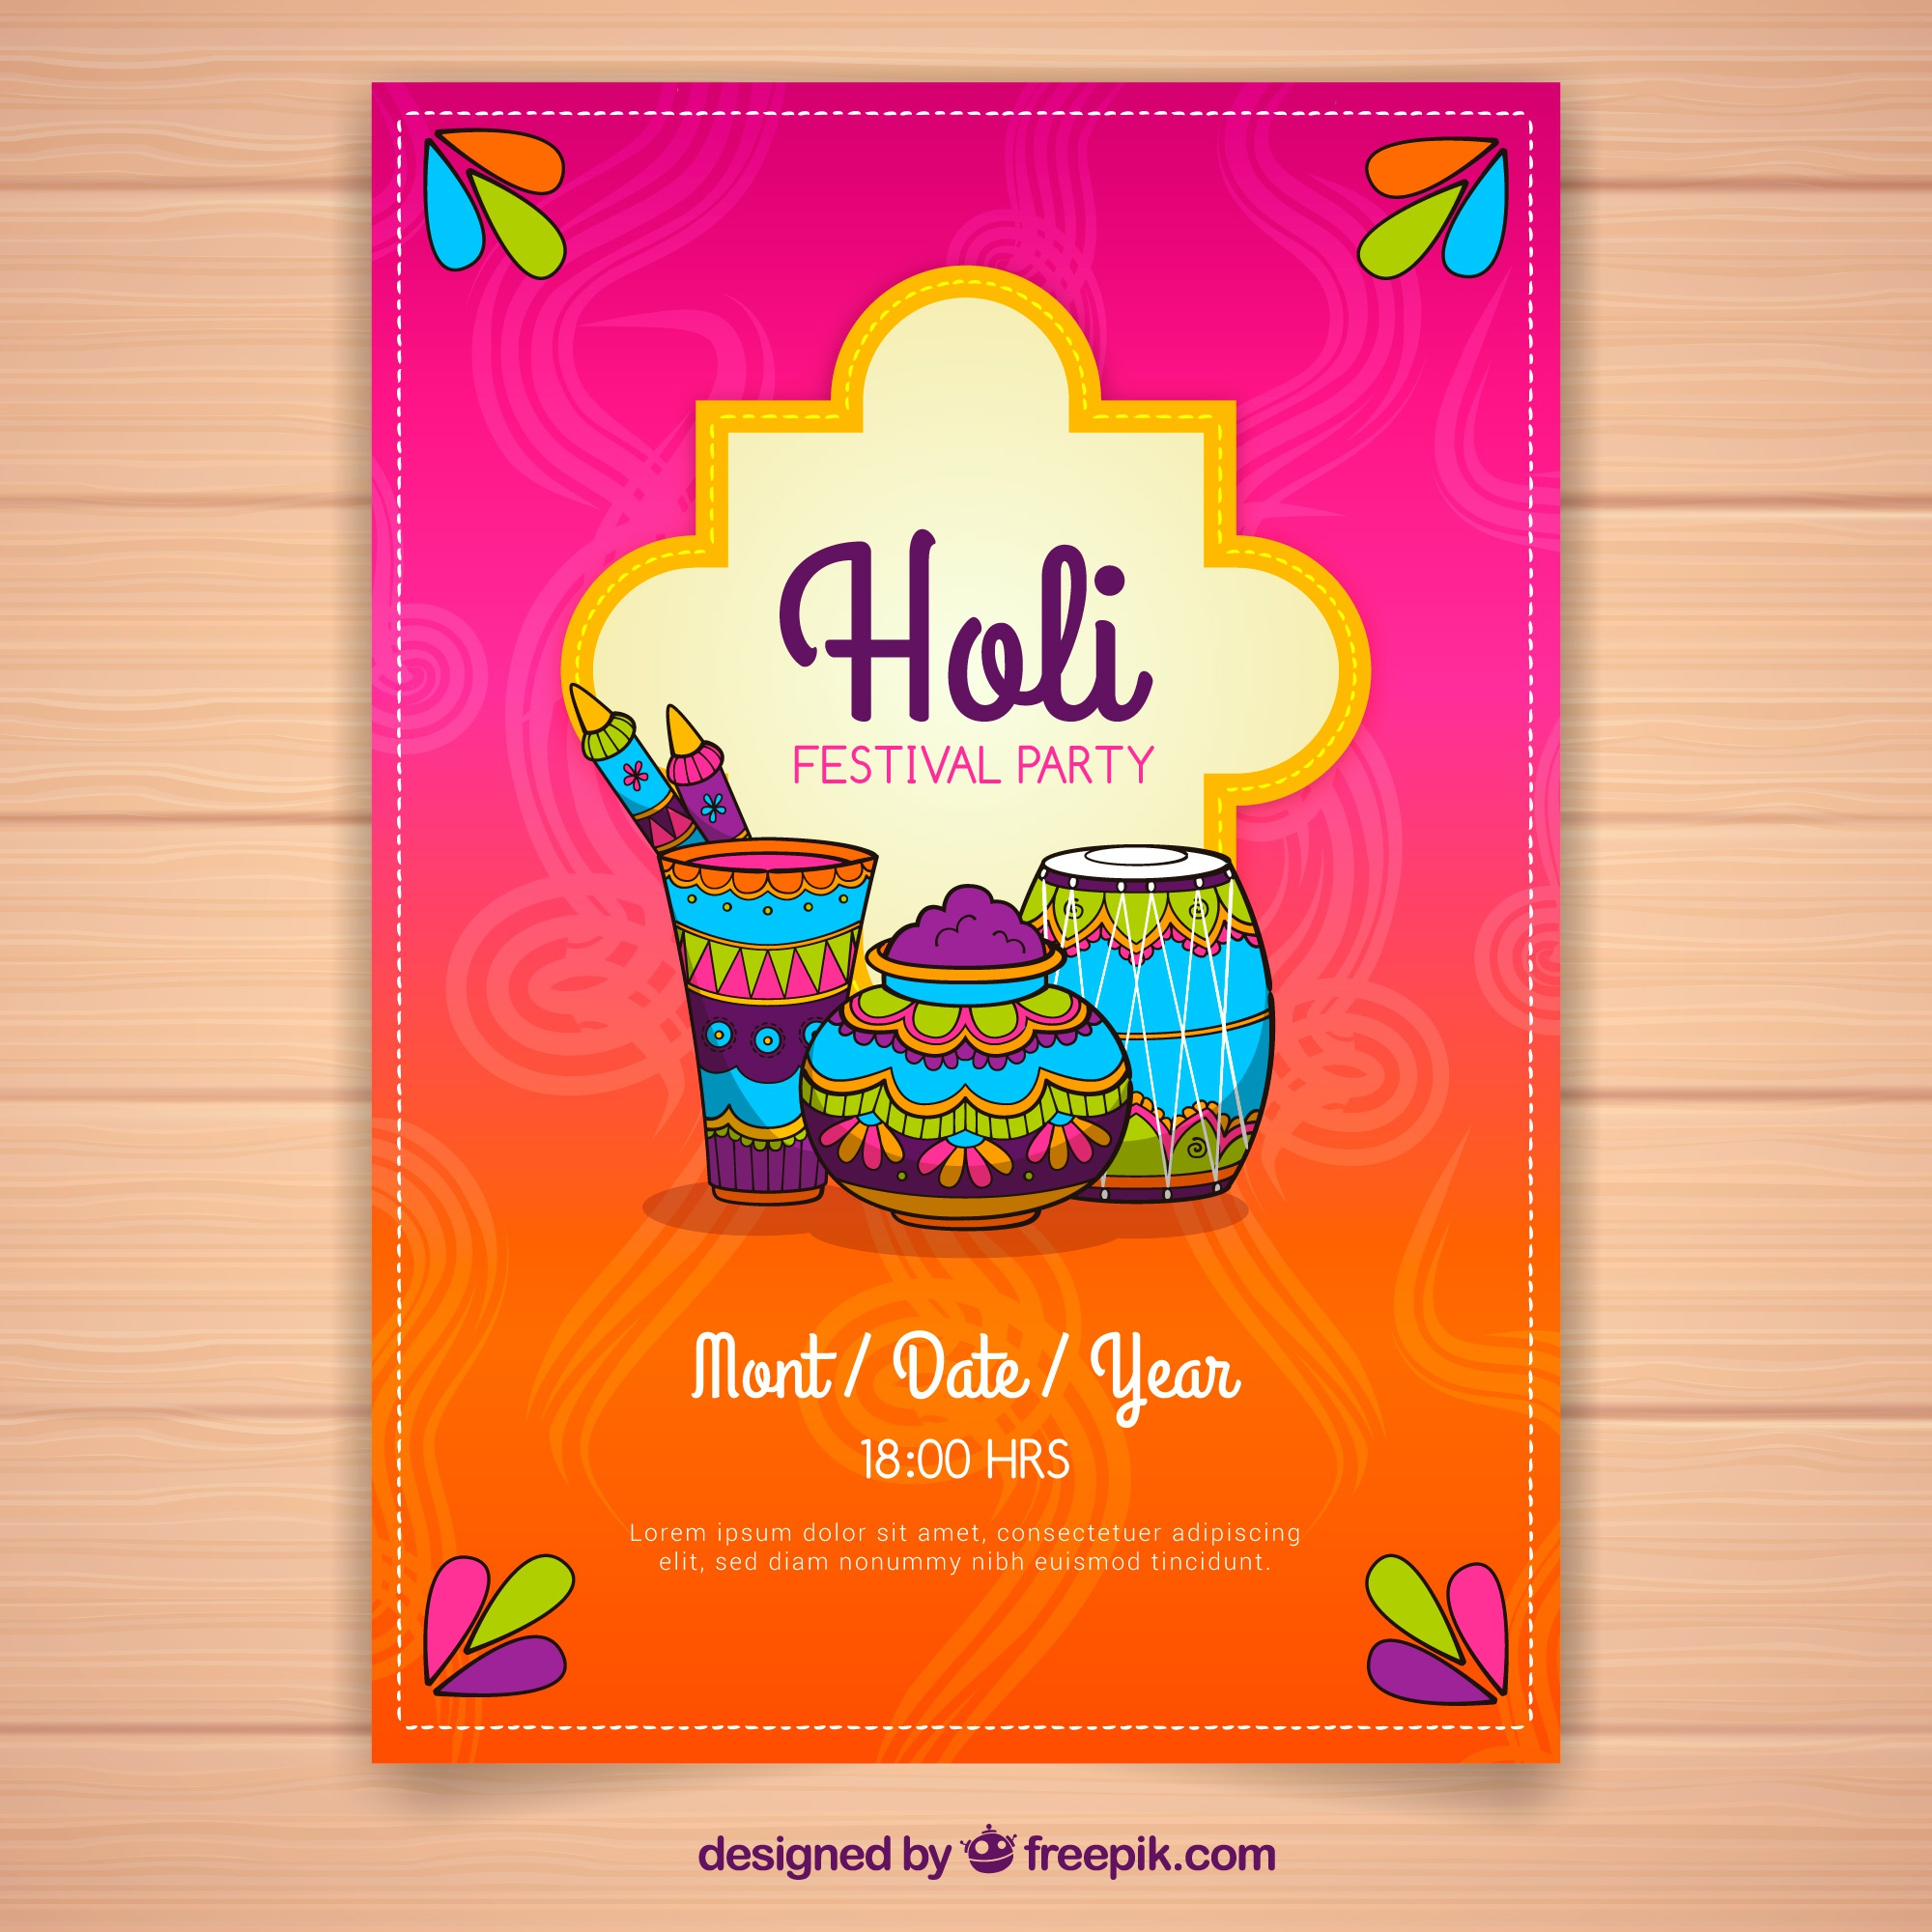 Hand drawn flyer for holi festival